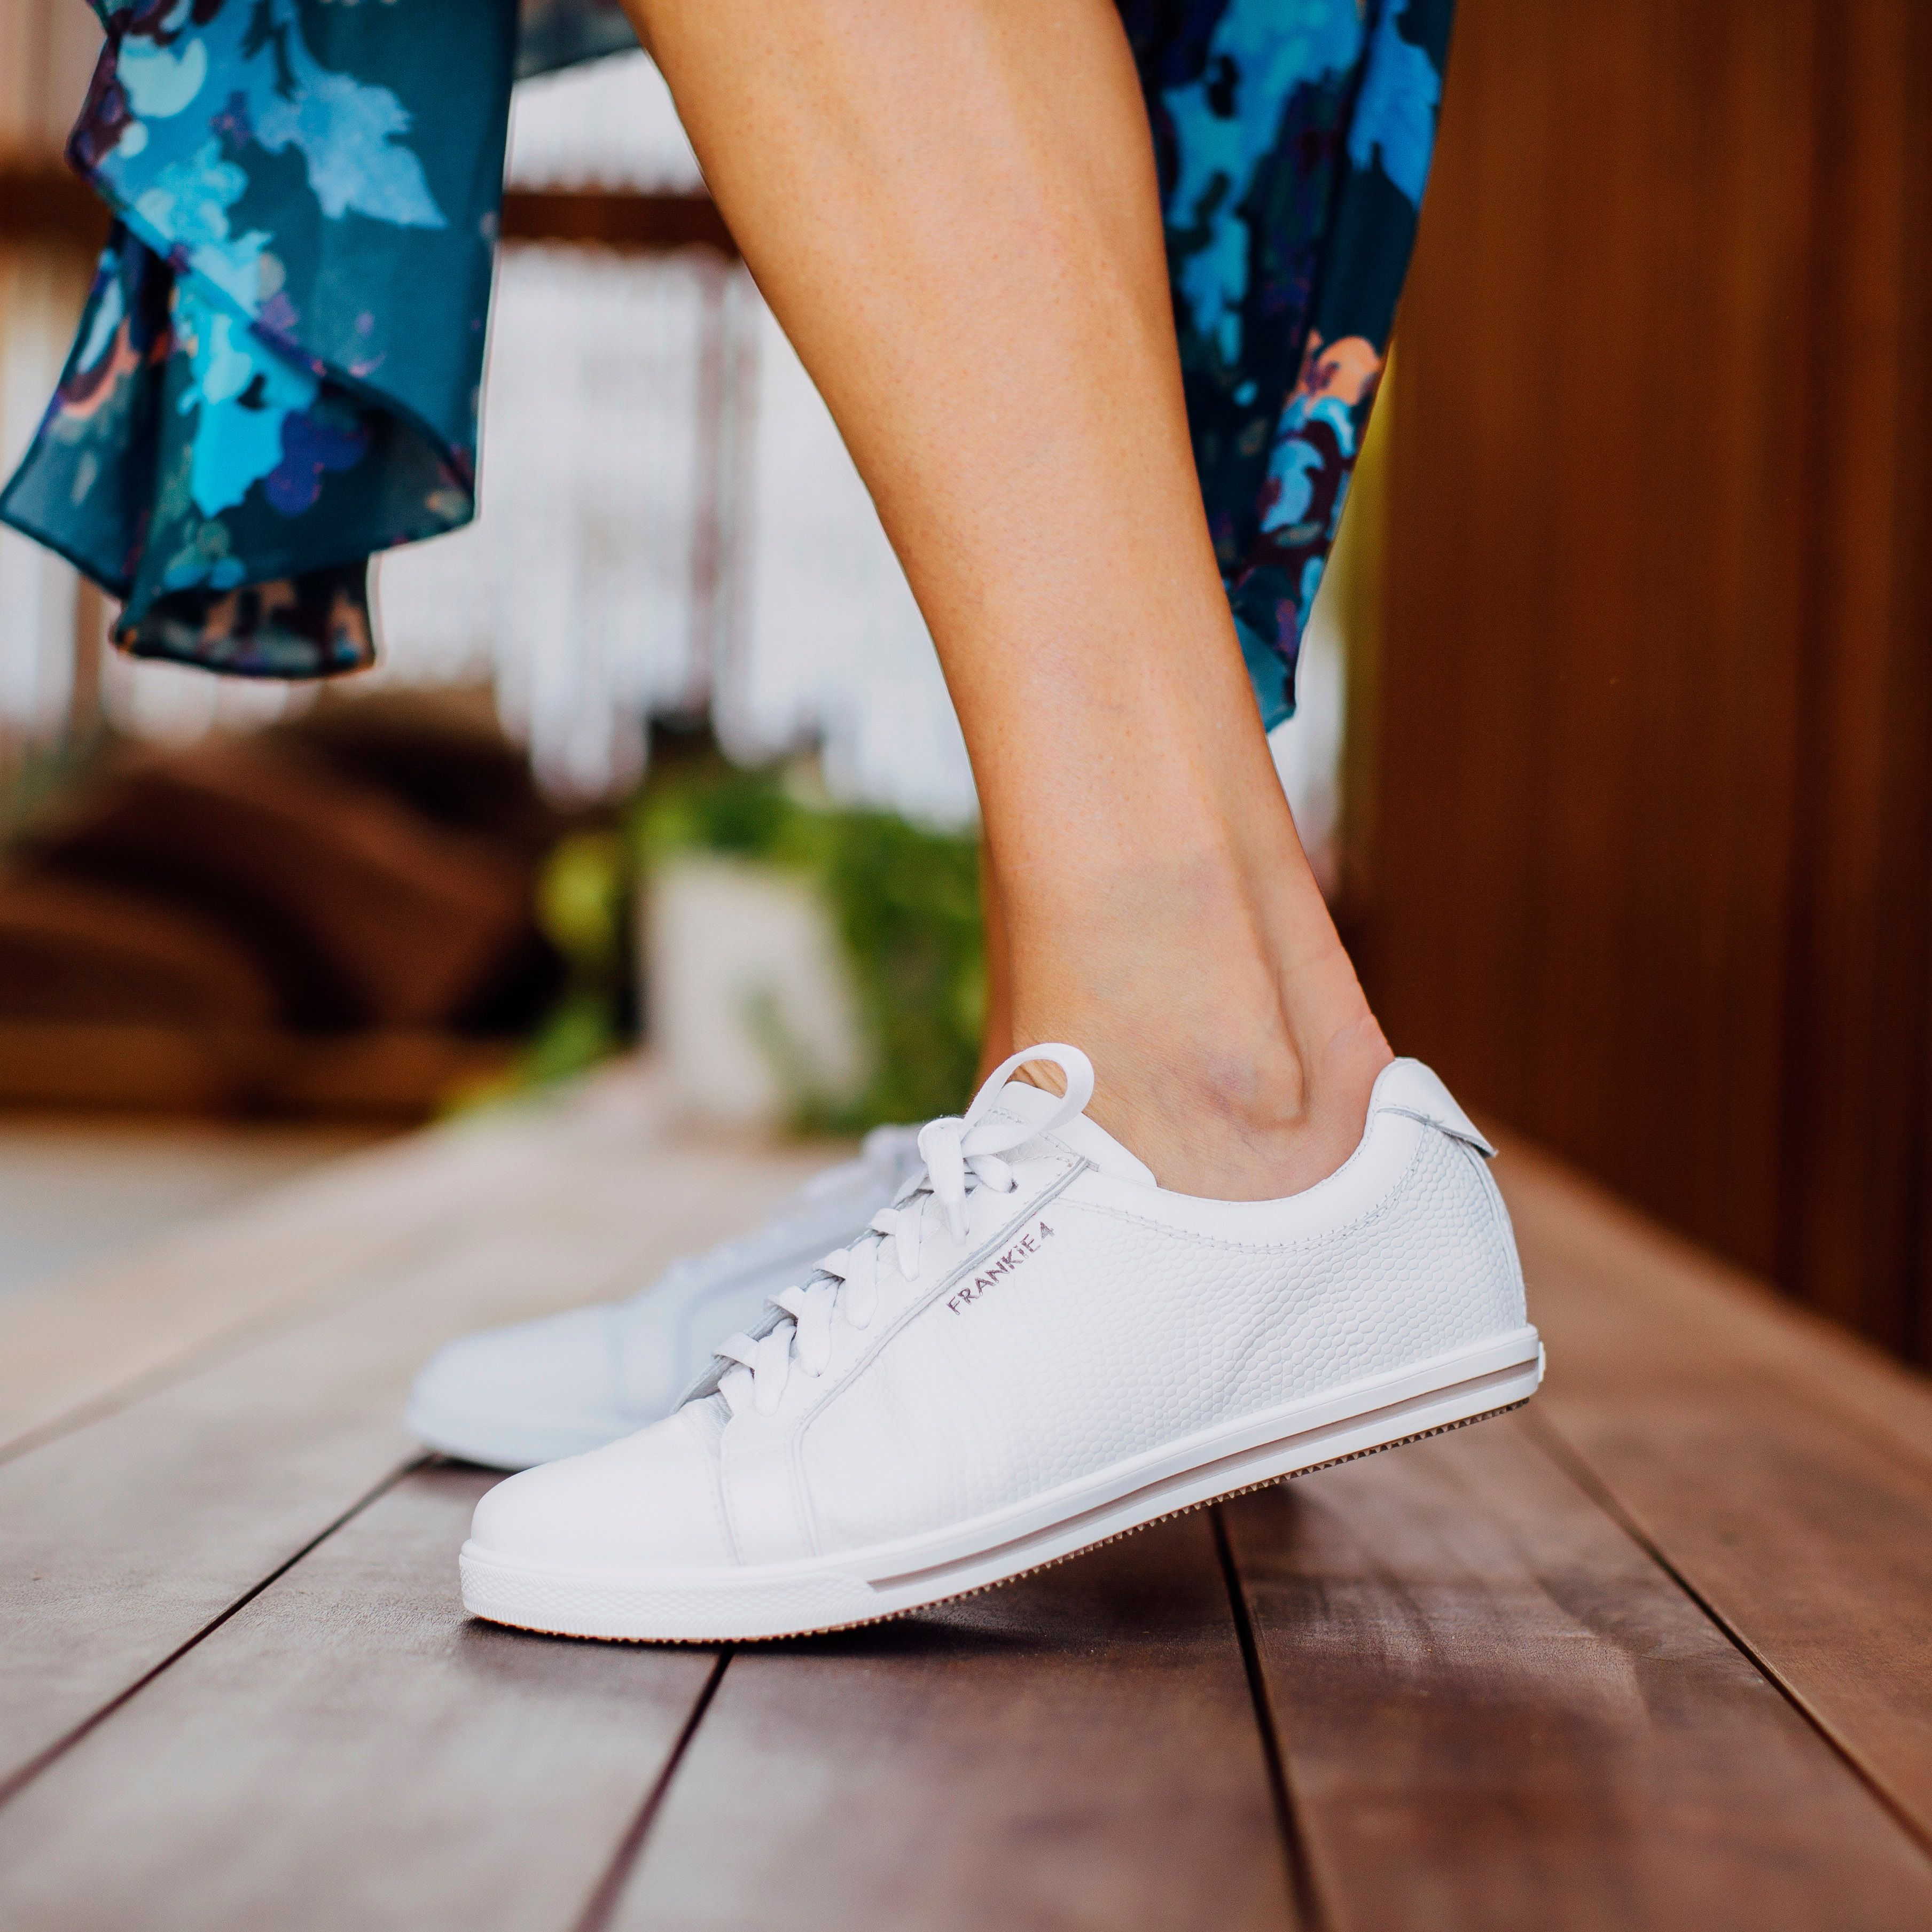 LUCY White Croc is our newest sneaker